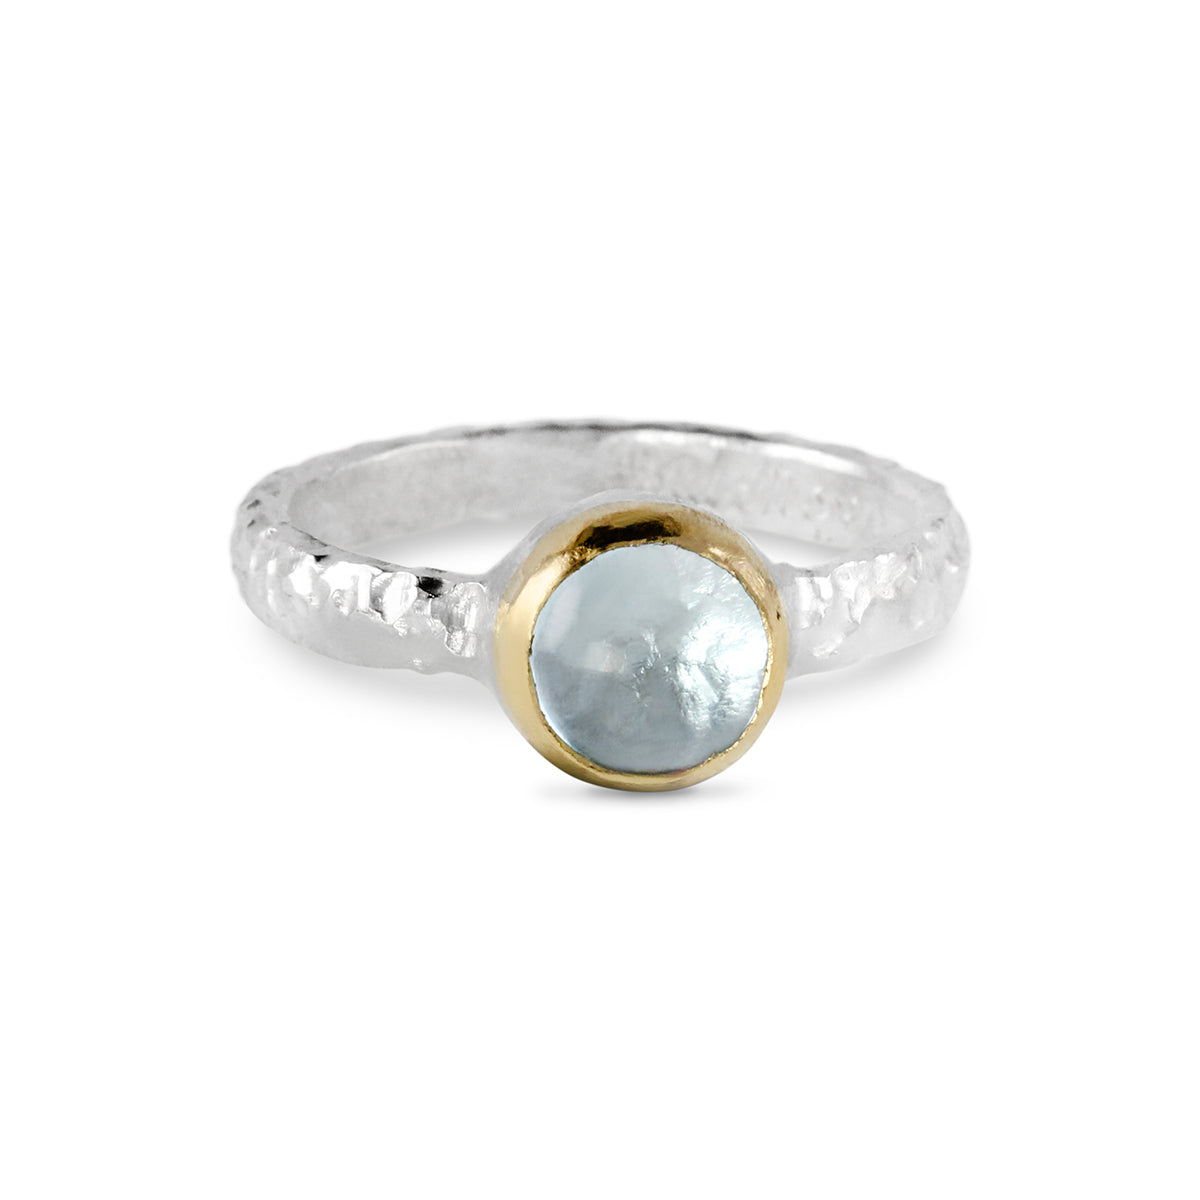 Ring in sterling silver with  cabochon blue topaz in 18ct yellow gold. - Paul Magen